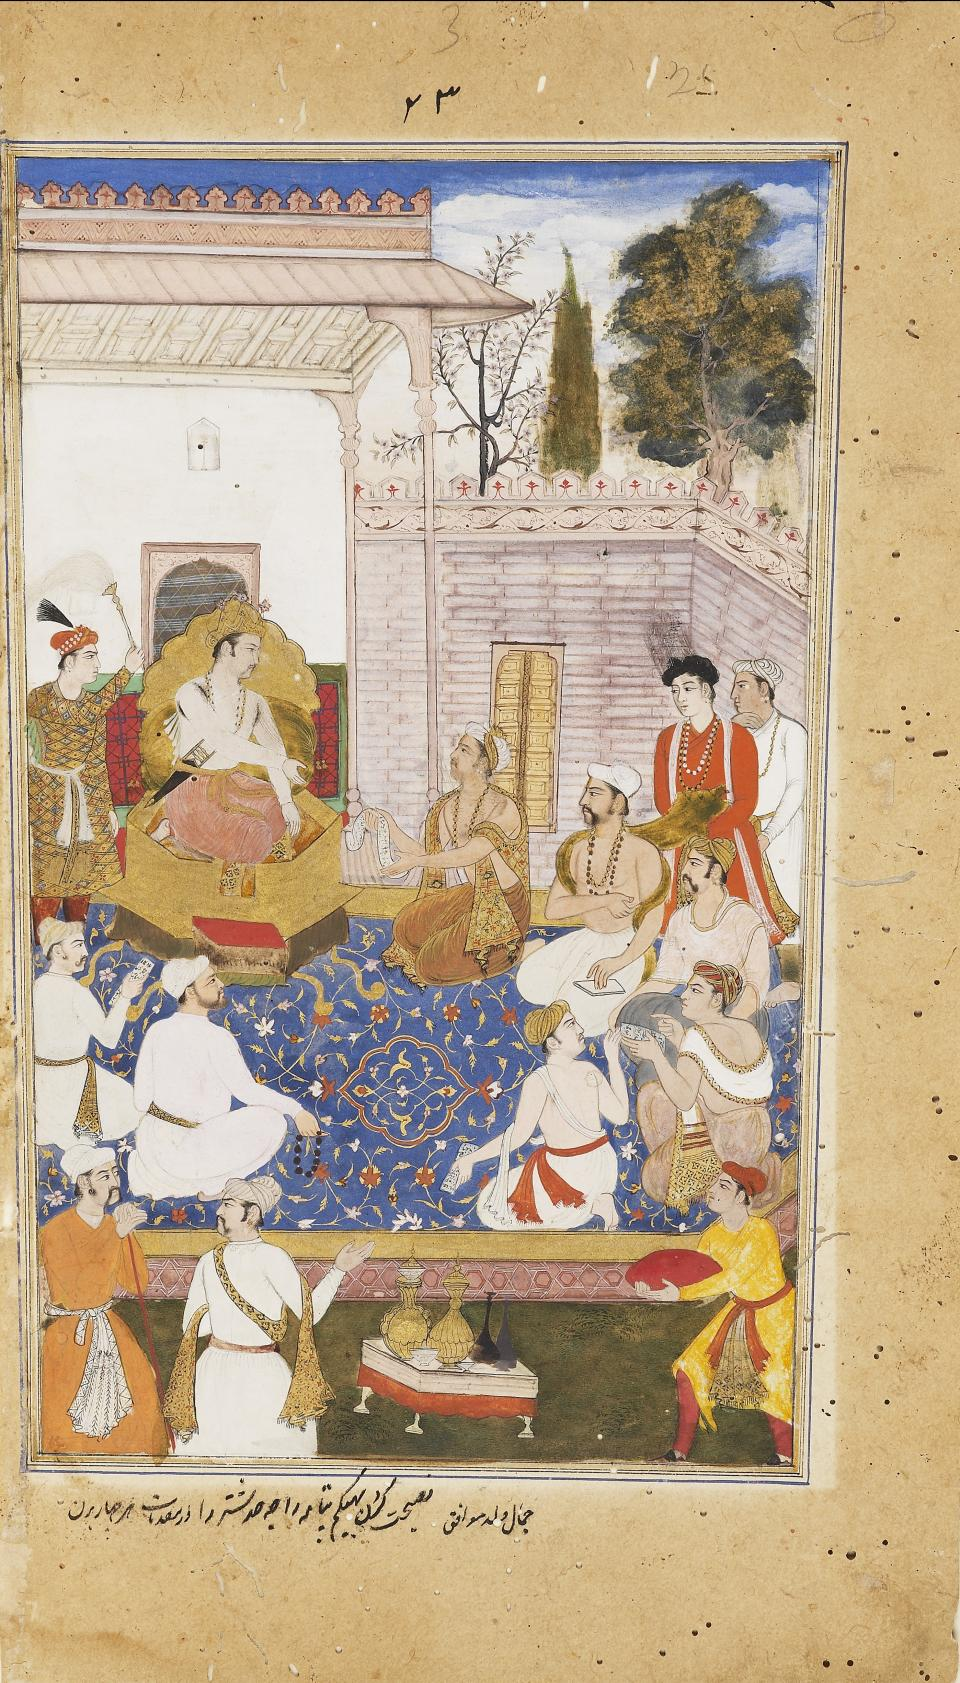 Bhishma advises Yudhishthira on the nature of the four varnas, or castes, 1598.